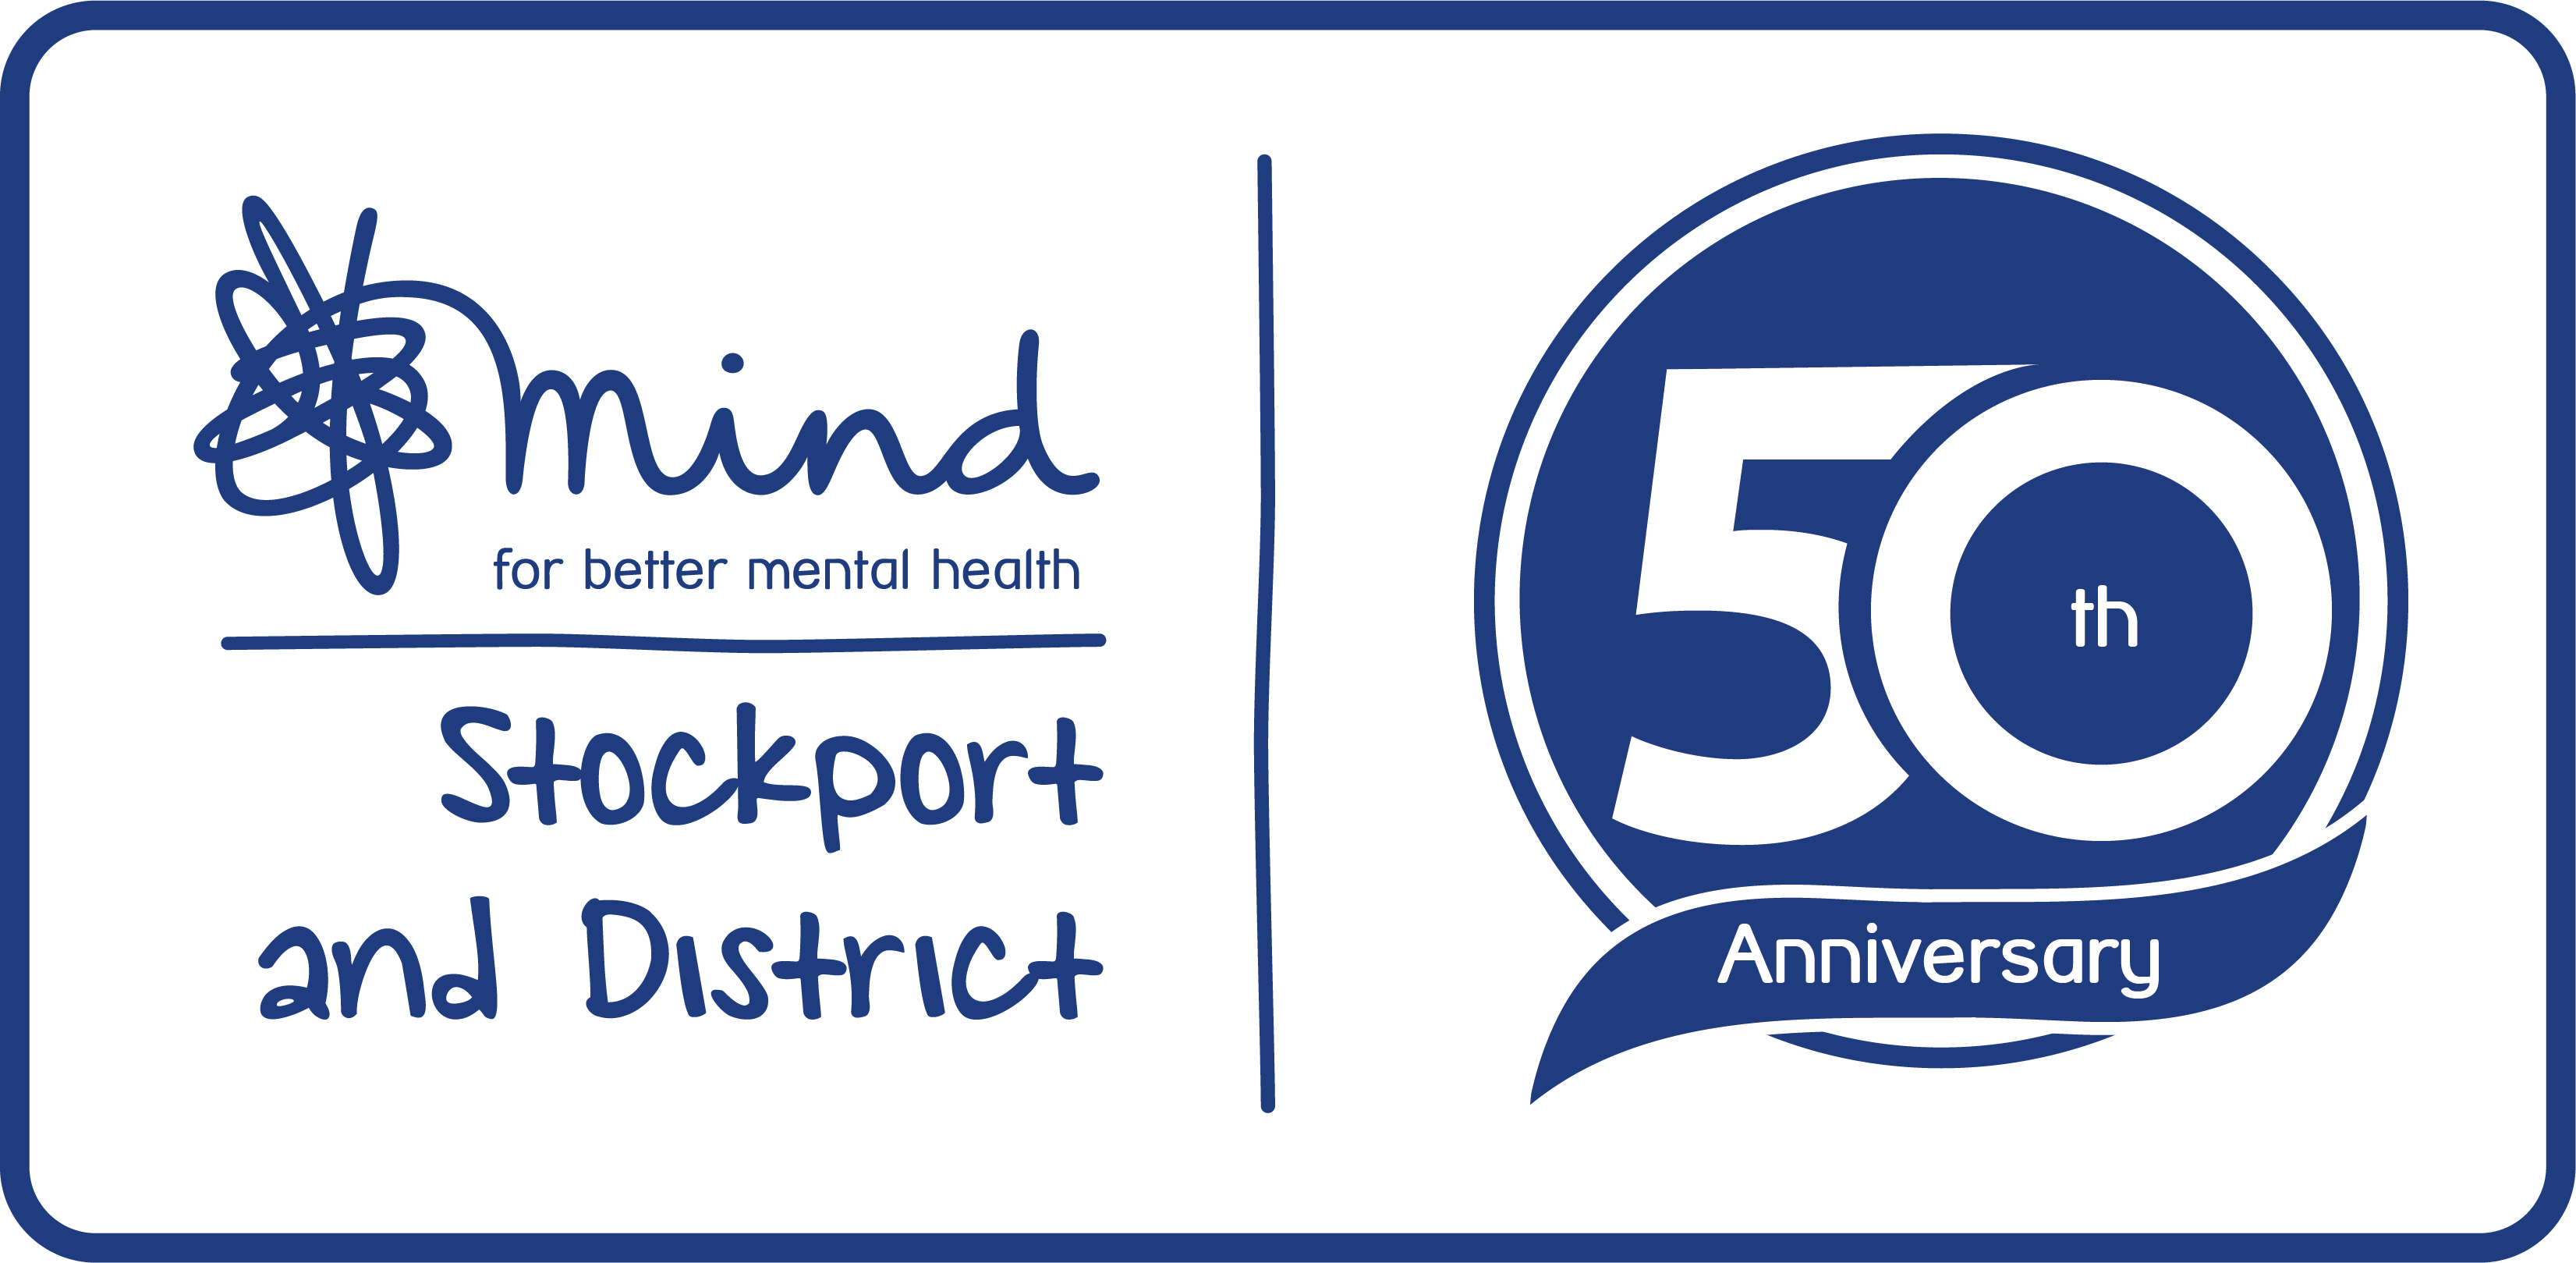 It's our 50th anniversary year